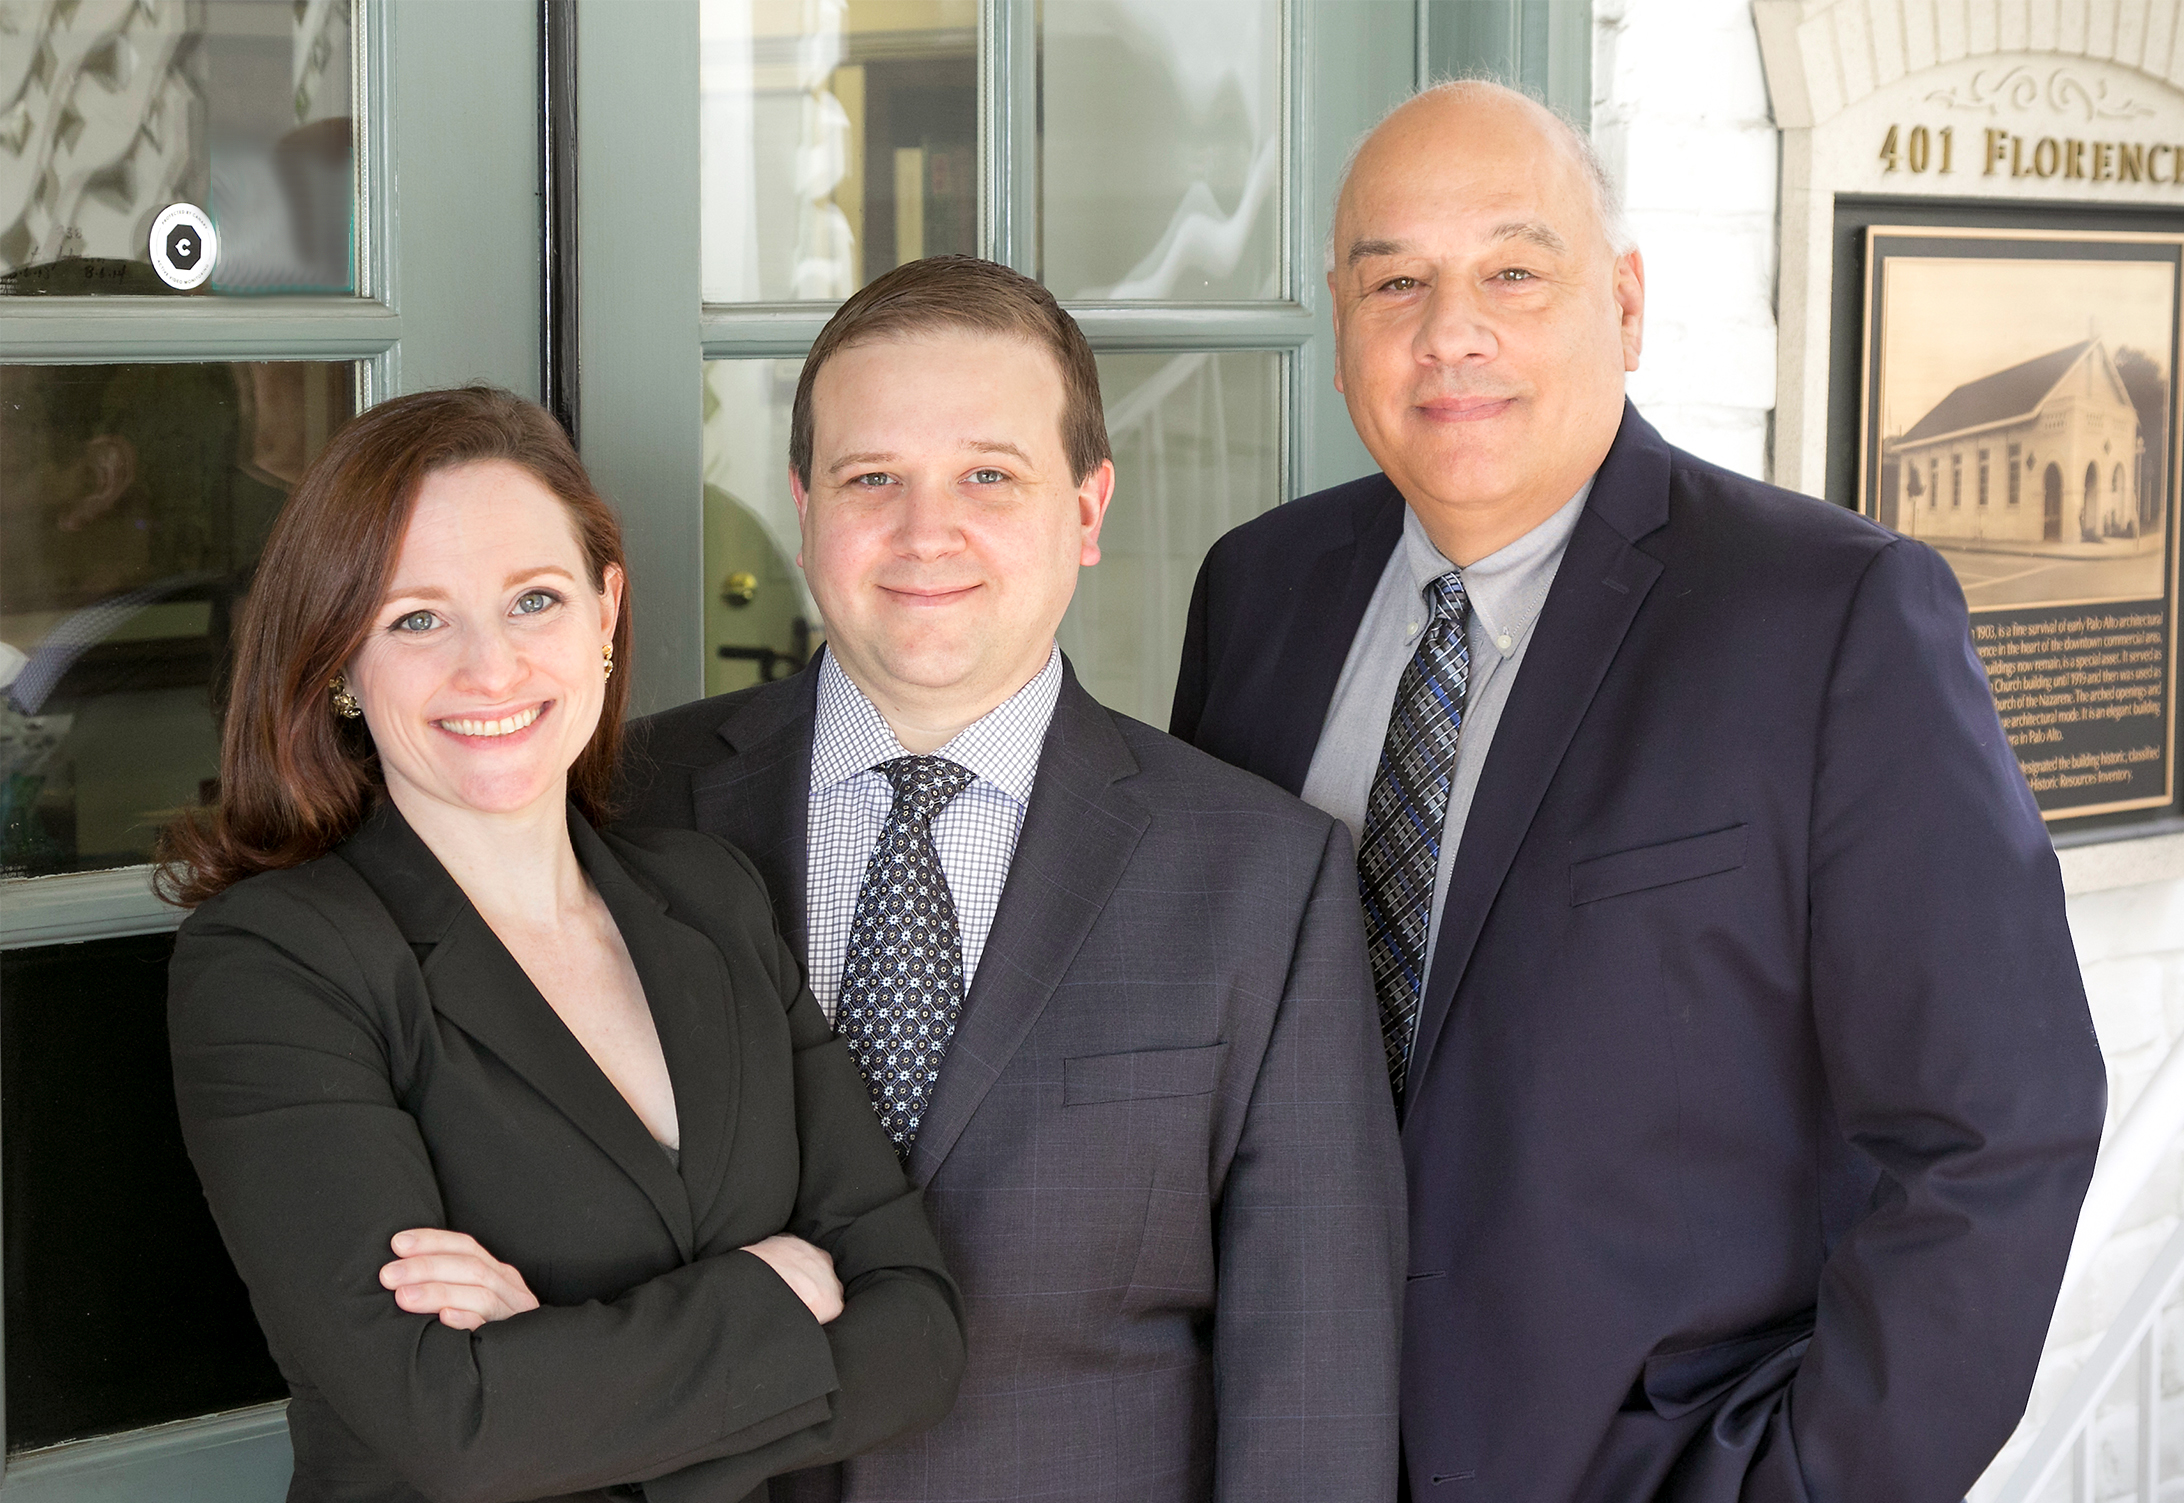 FROM LEFT TO RIGHT:  LUCY GOODNOUGH ,  CHRISTOPHER SARGENT , AND  JACK RUSSO